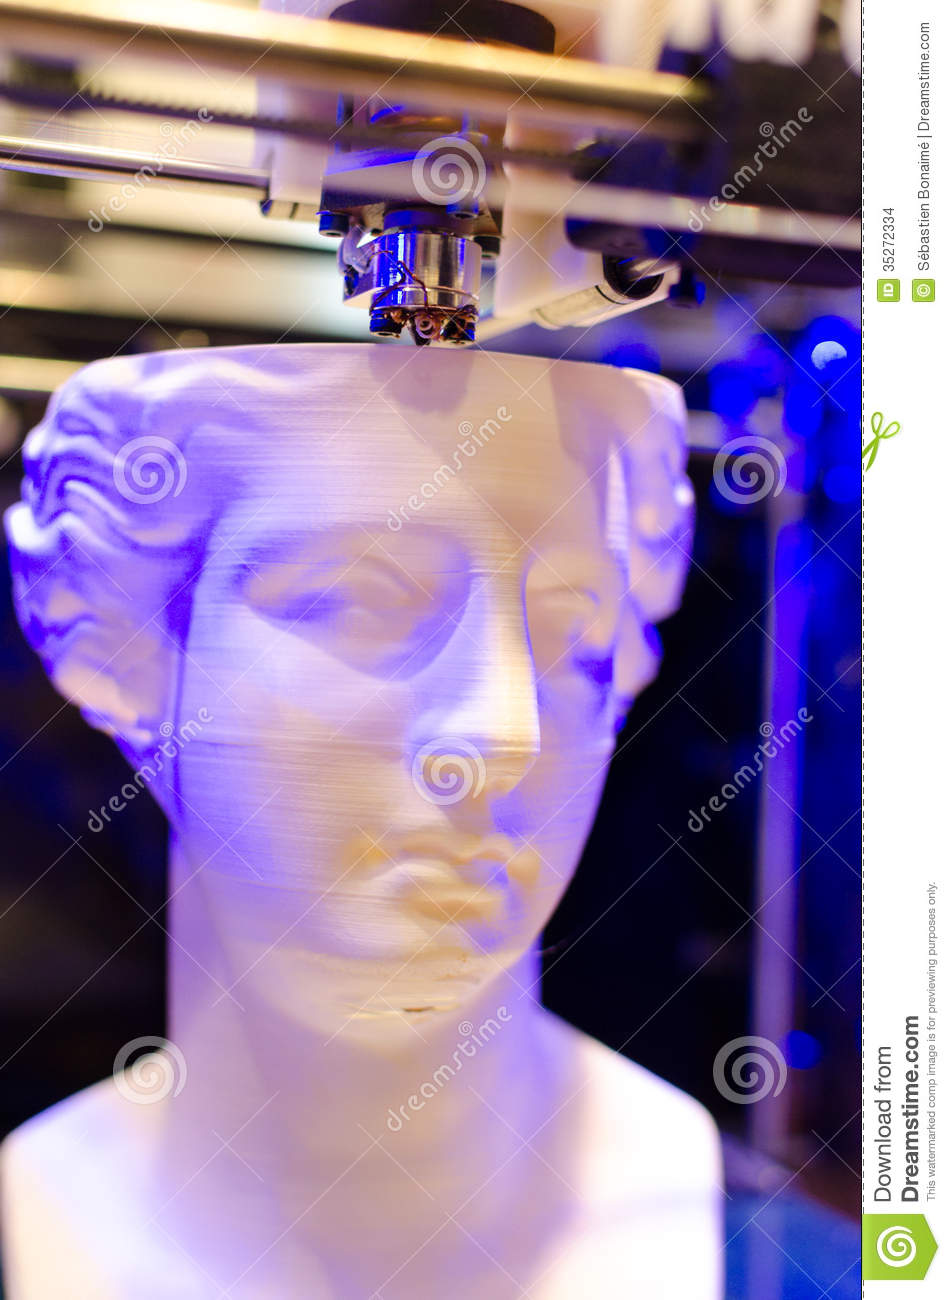 Download 3D Printer With Printing Head Stock Photo - Image of ceramic, digitally: 35272334